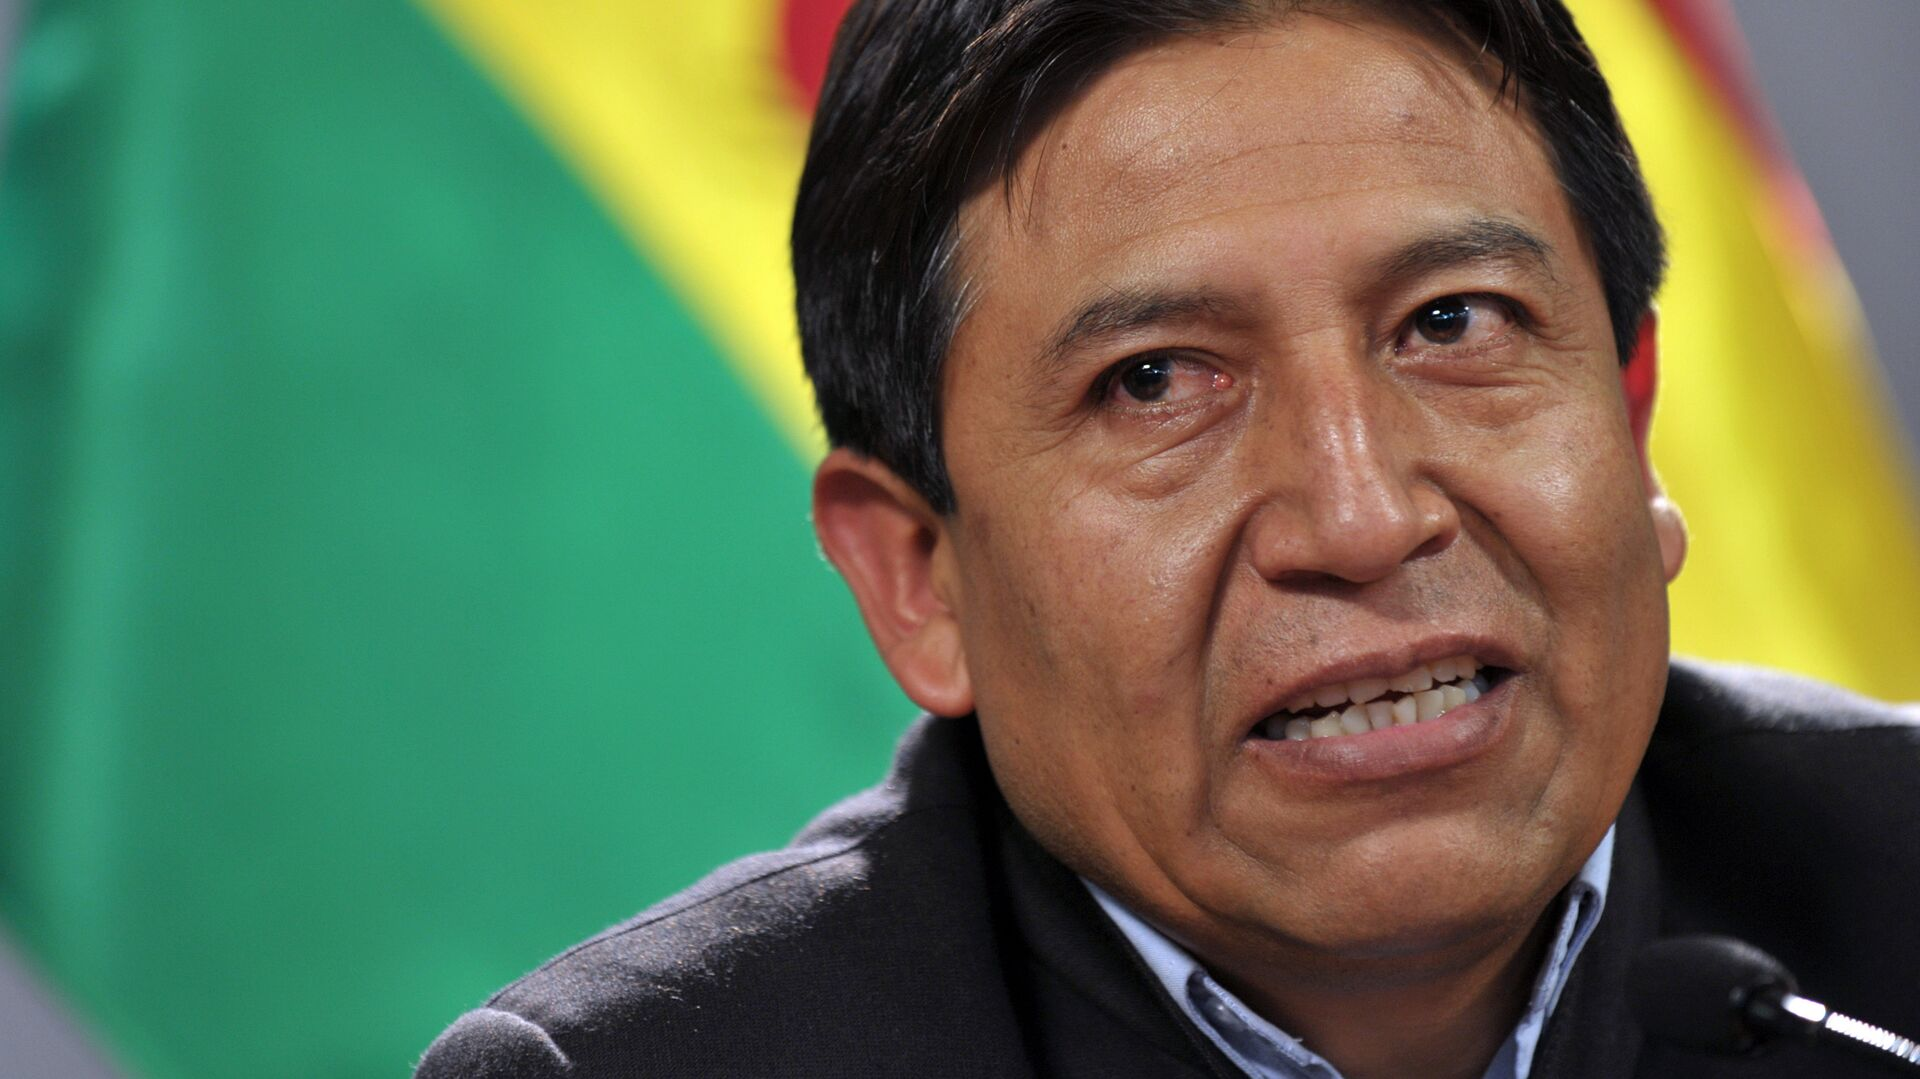 Bolivian Minister of Foreign Affairs David Choquehuanca speaks during a press conference in the framework of the Organization of American States (OAS) 40th Summit of Foreign Affairs Ministers in Lima on June 8, 2010. - Sputnik Mundo, 1920, 23.04.2021